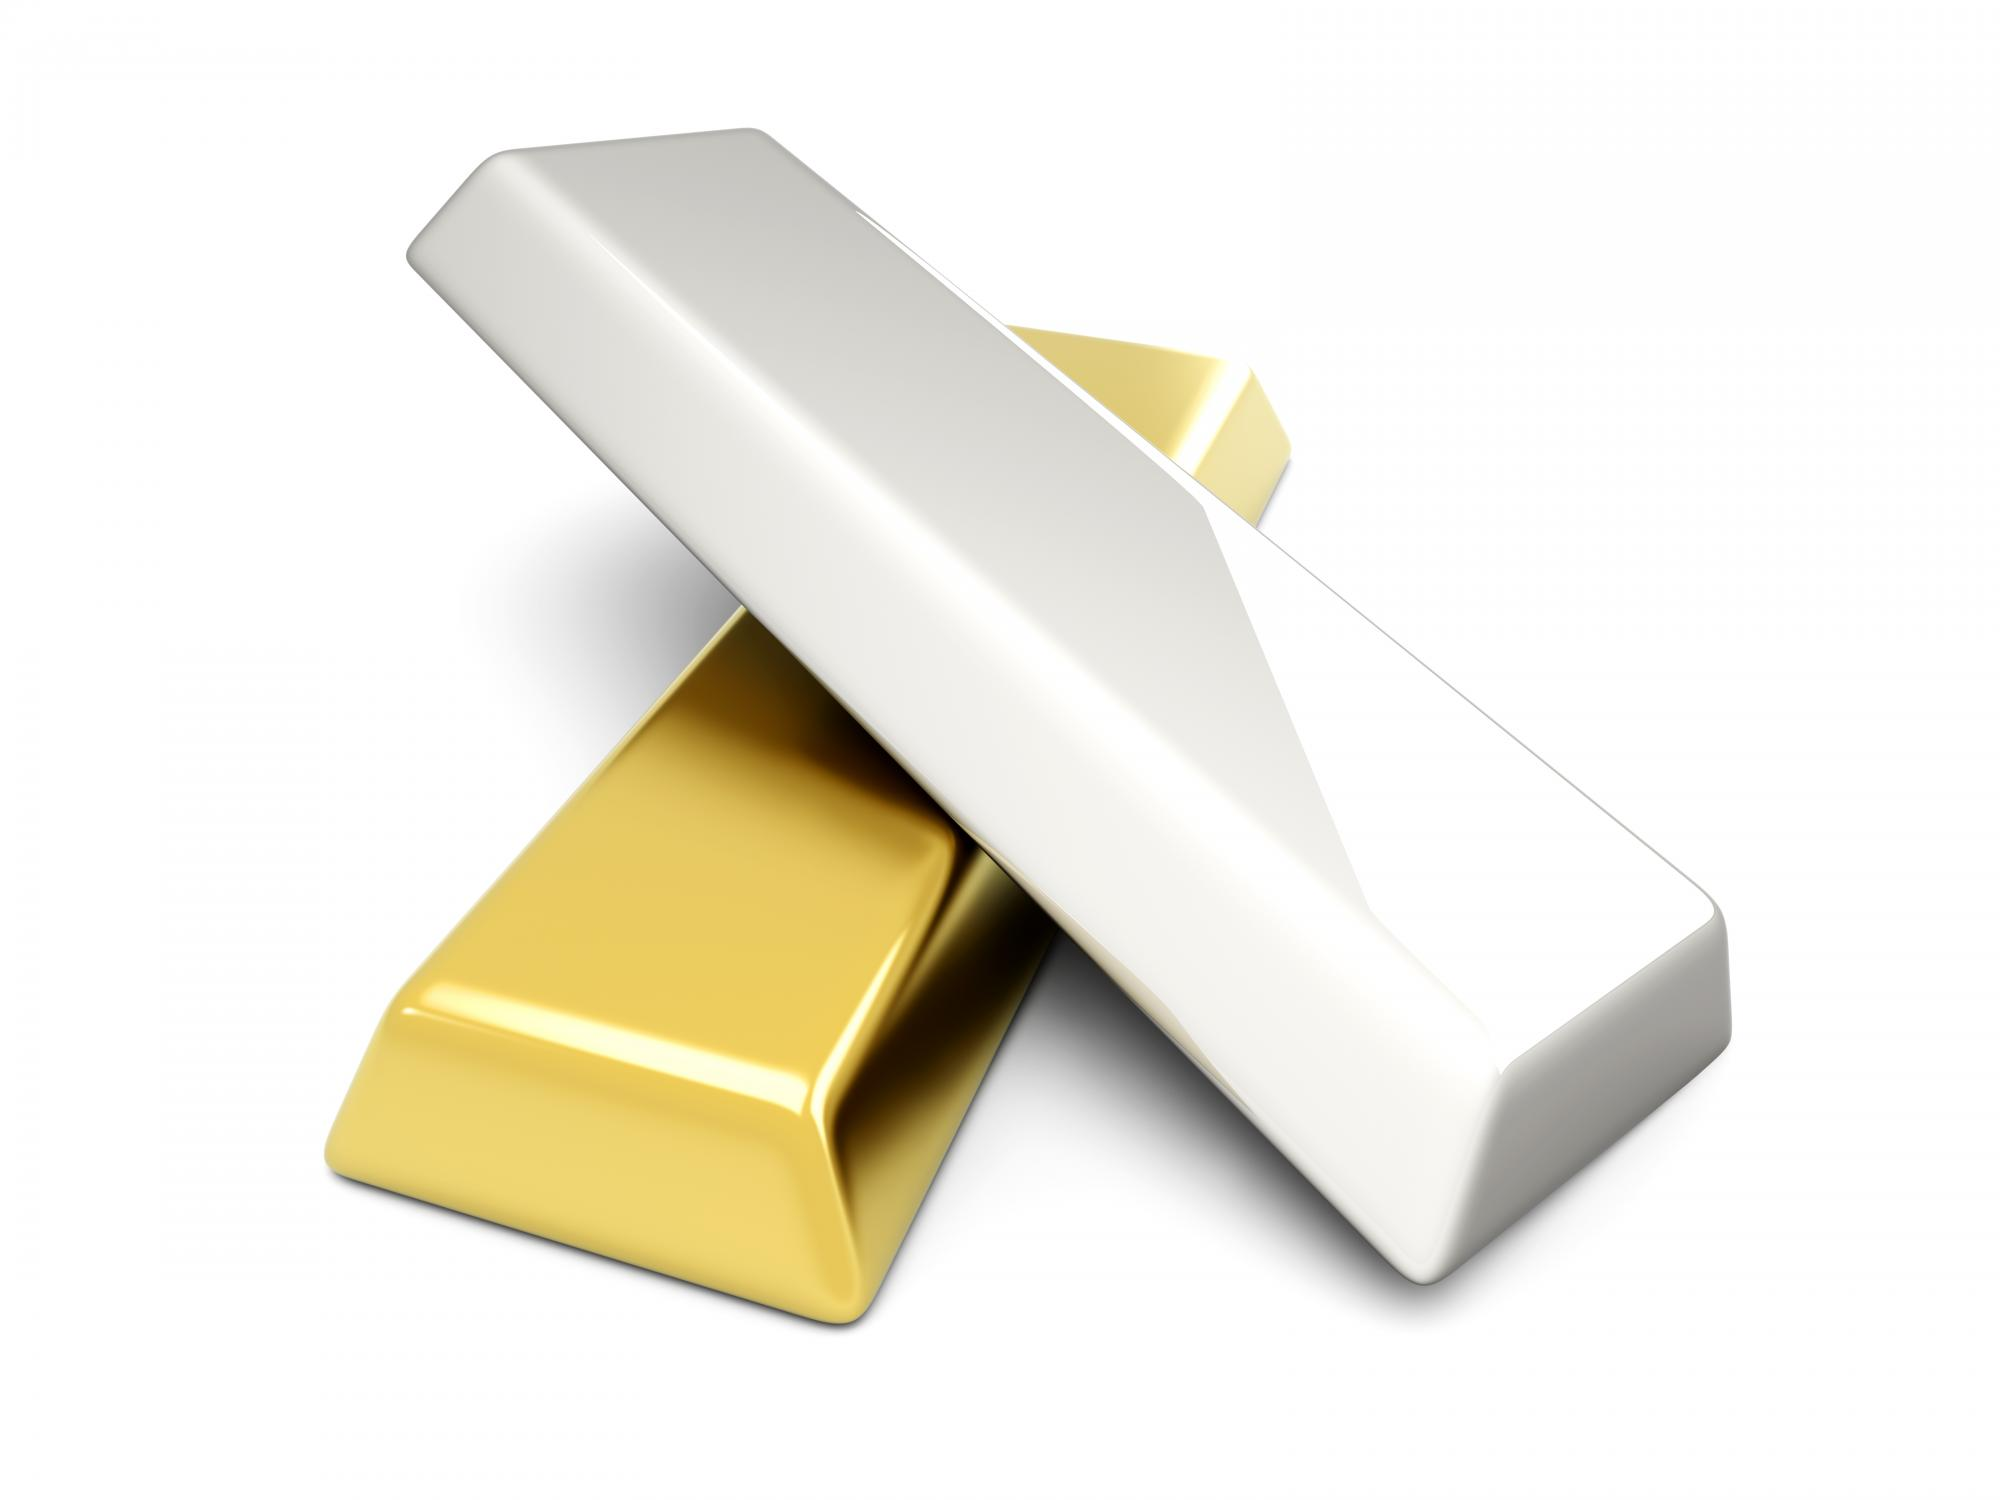 Gold and Silver Ingots